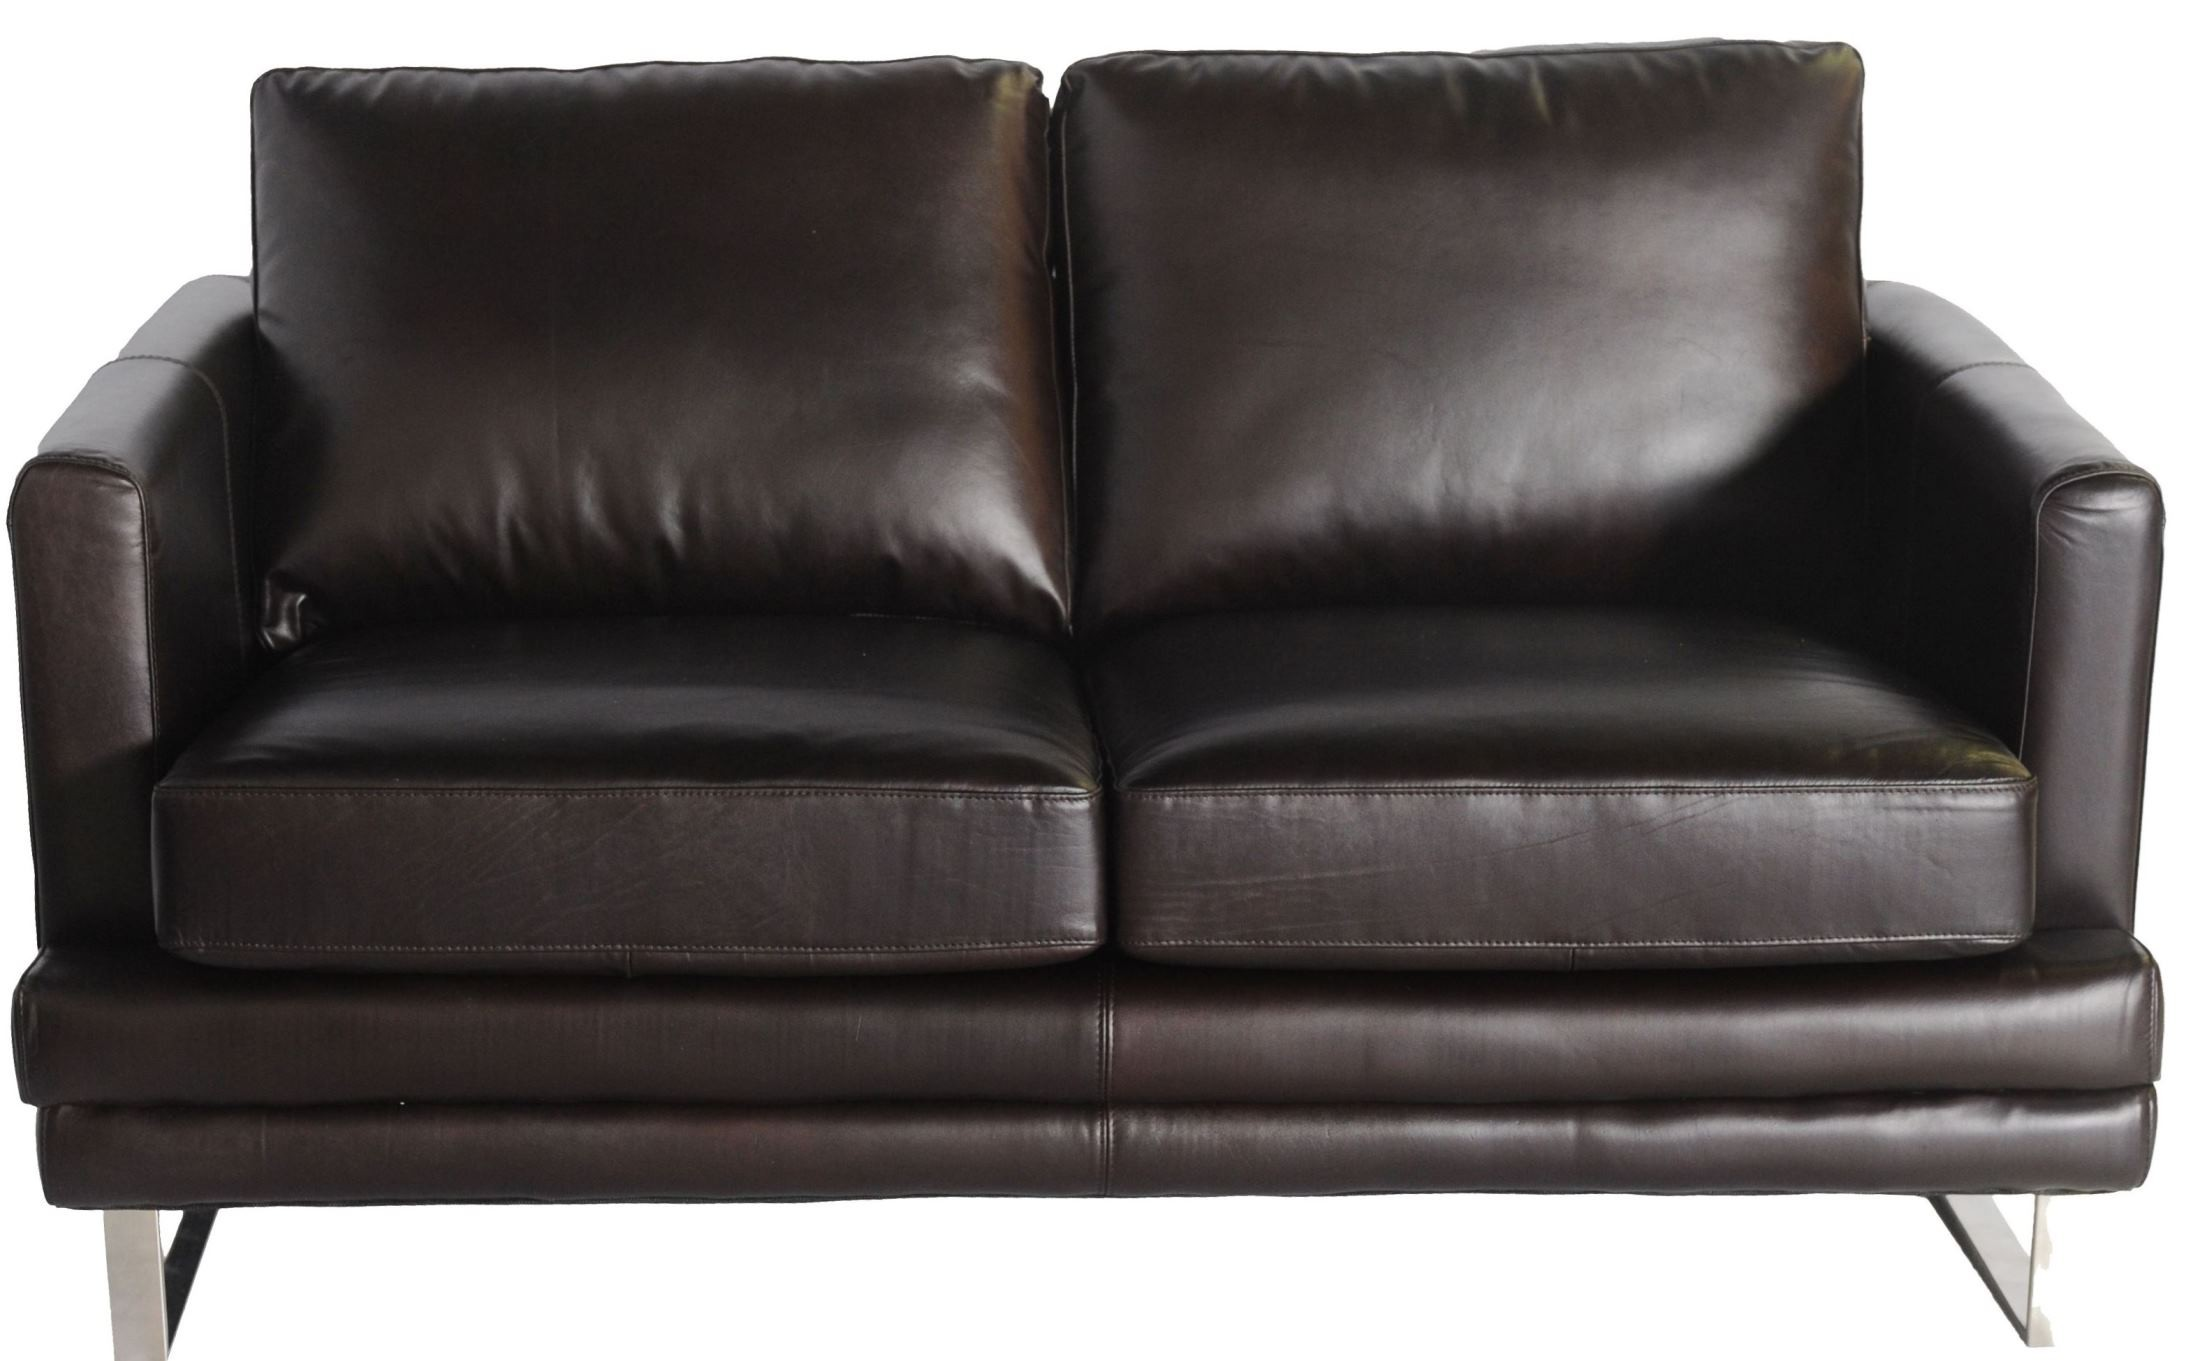 leather sofas online melbourne arhaus dune sofa reviews dark chocolate loveseat from lazzaro wh